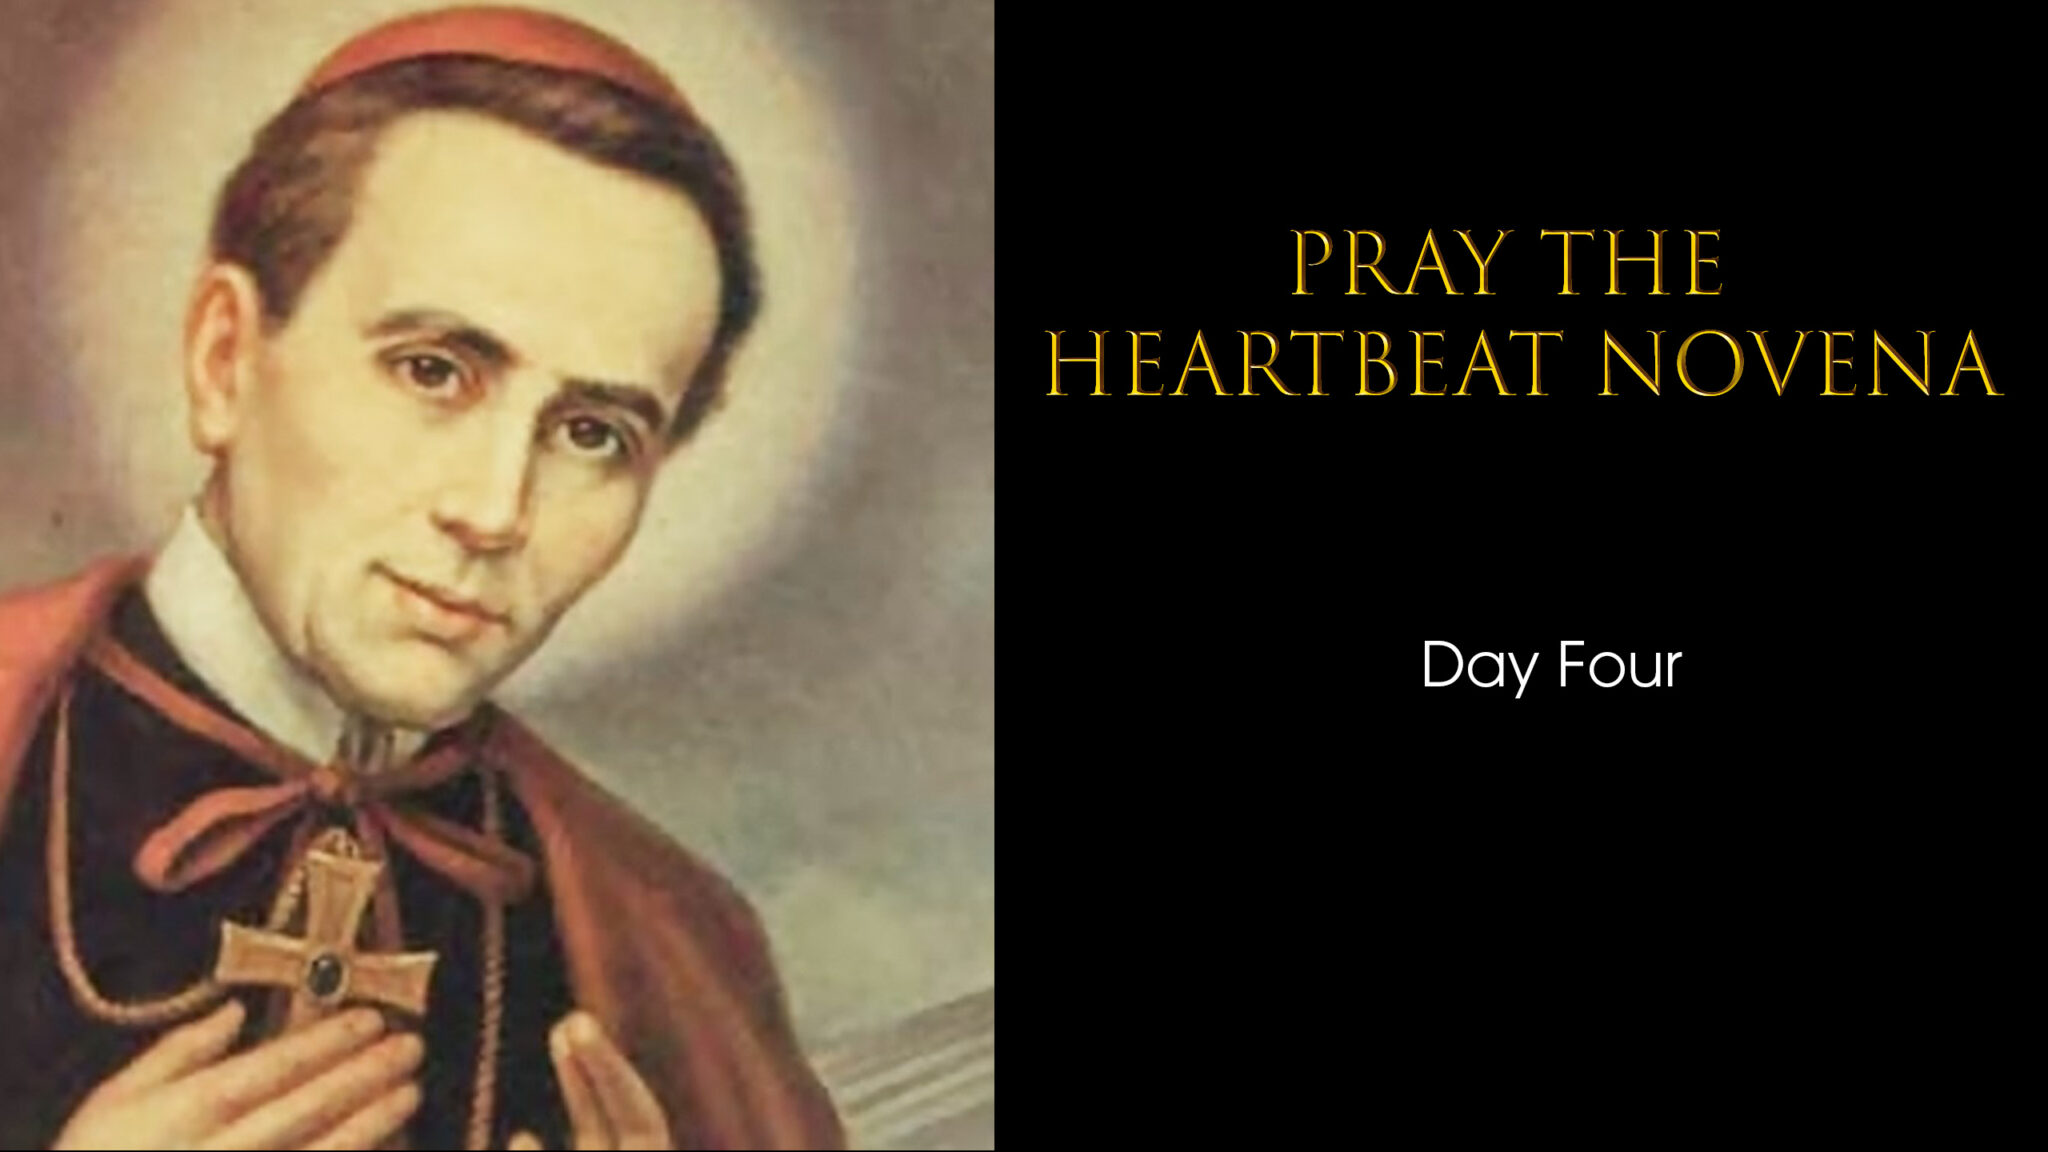 Heartbeat Novena day four